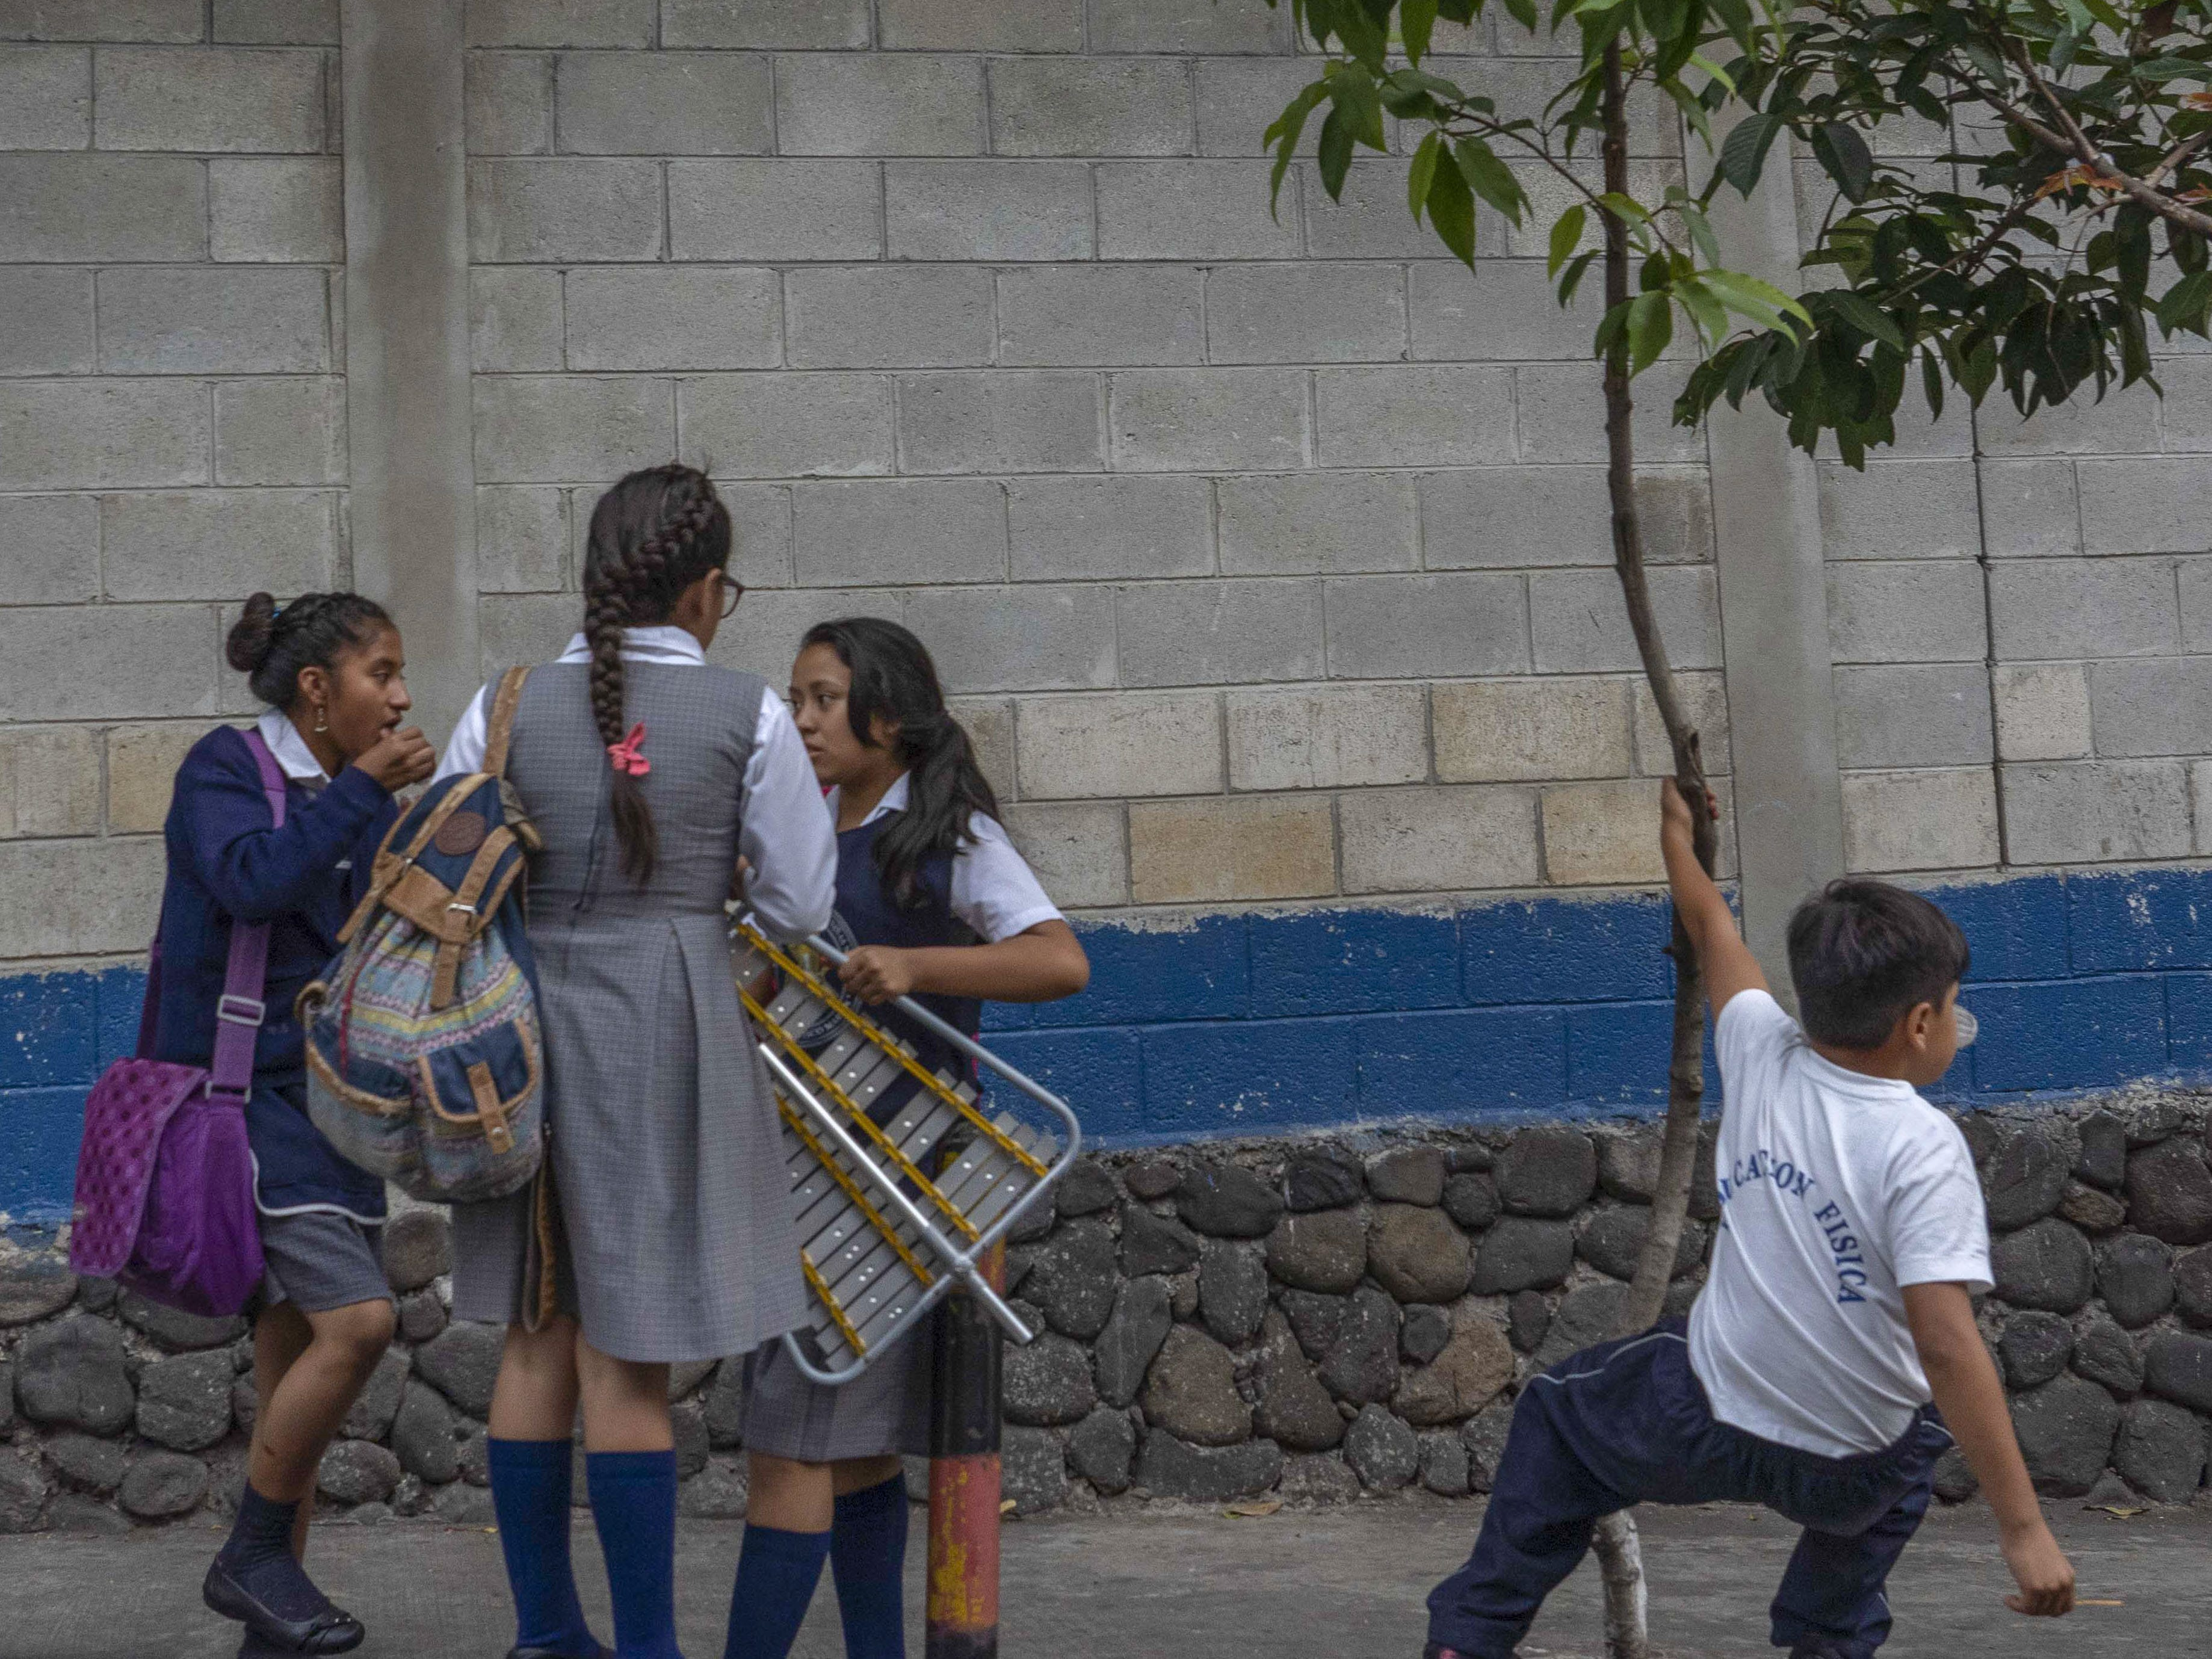 Children play after school in Guatemala. Guatemala is among the poorest countries in Latin America and also one of the most dangerous.